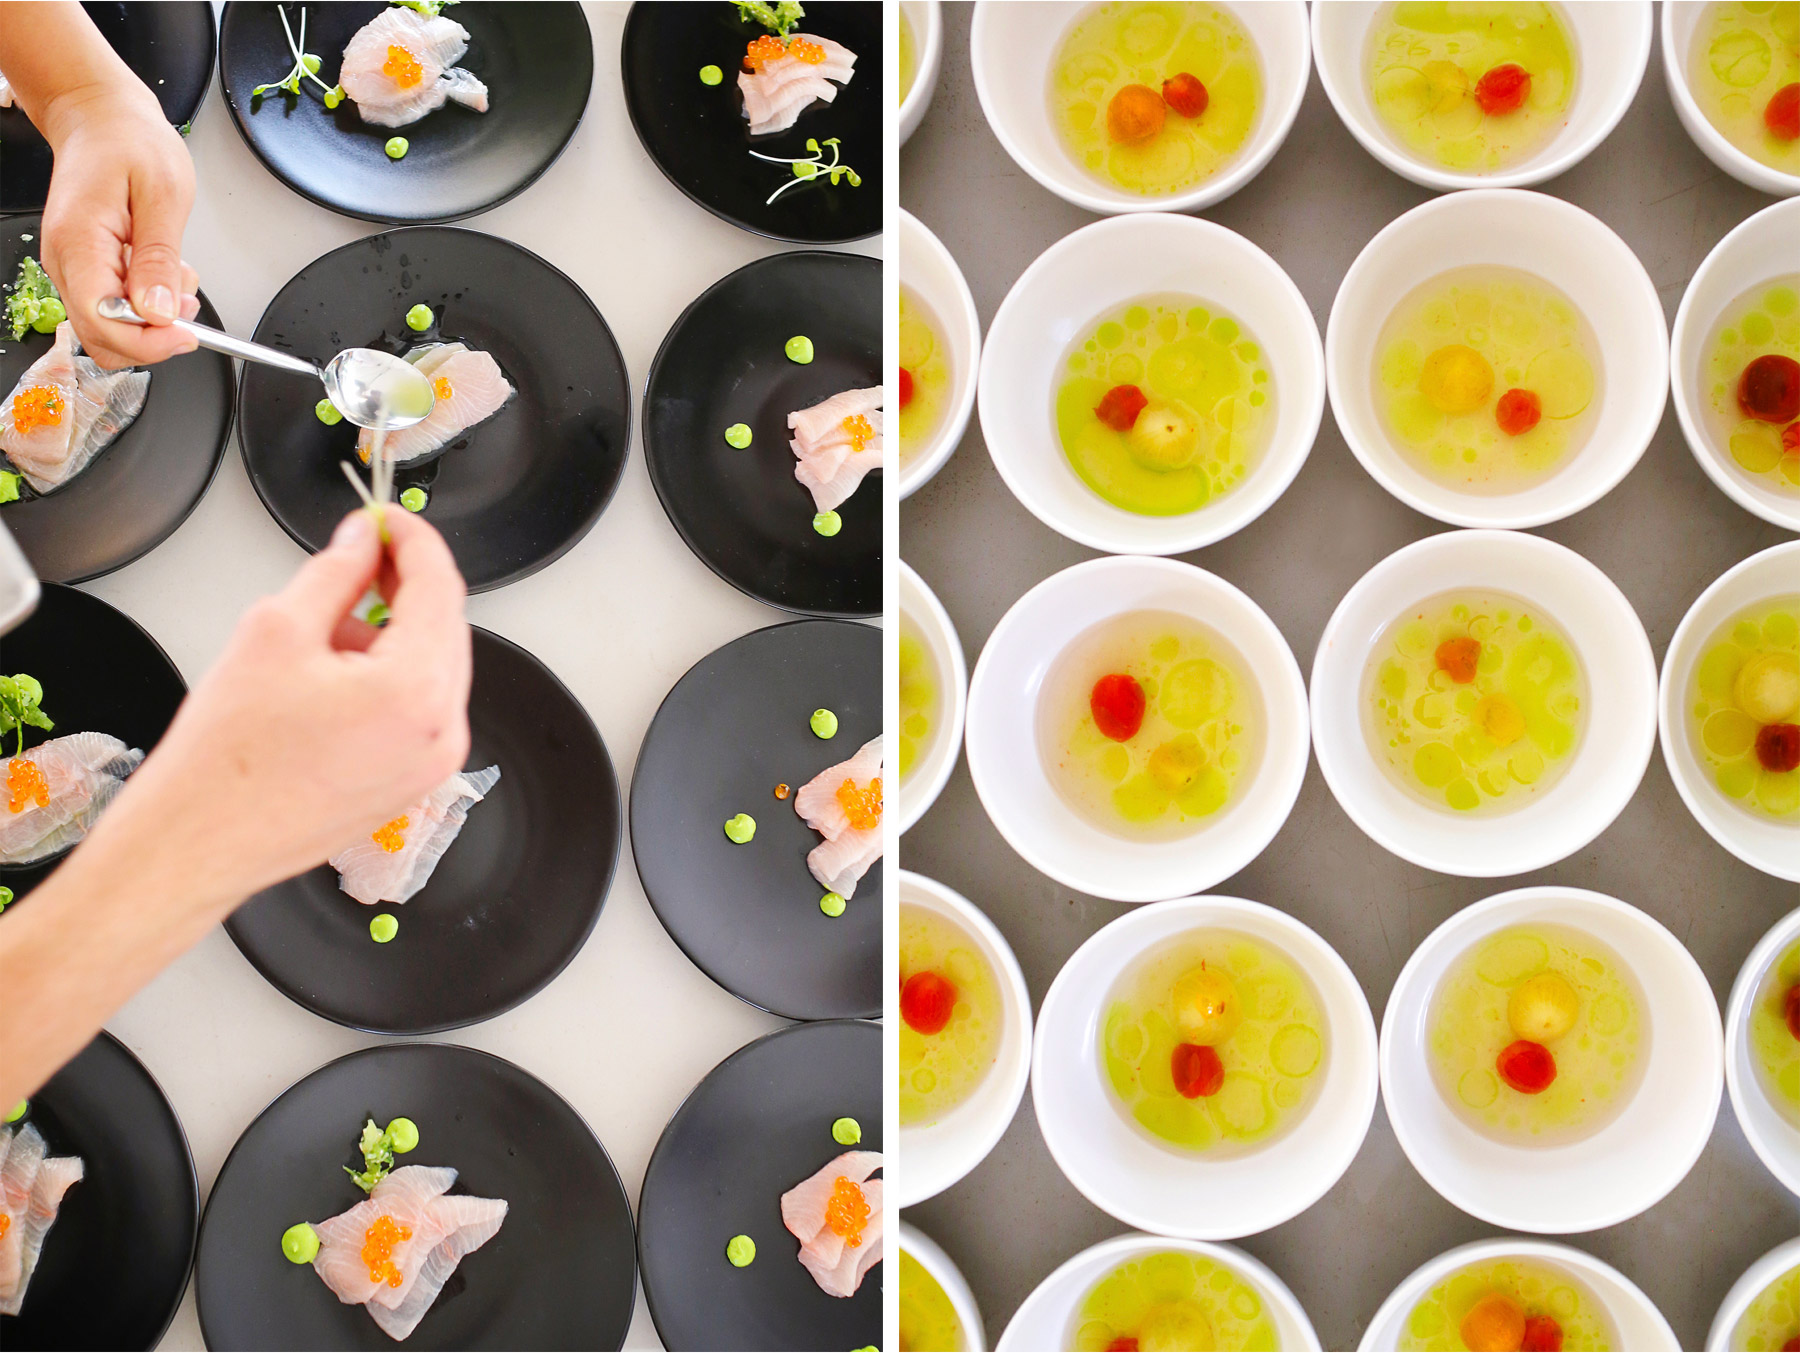 18-Vick-Photography-Wedding-Stouts-Island-Lodge-Wisconsin-Summer-Reception-Outdoor-Modern-Food-Plates-MiJa-and-Lucius.jpg